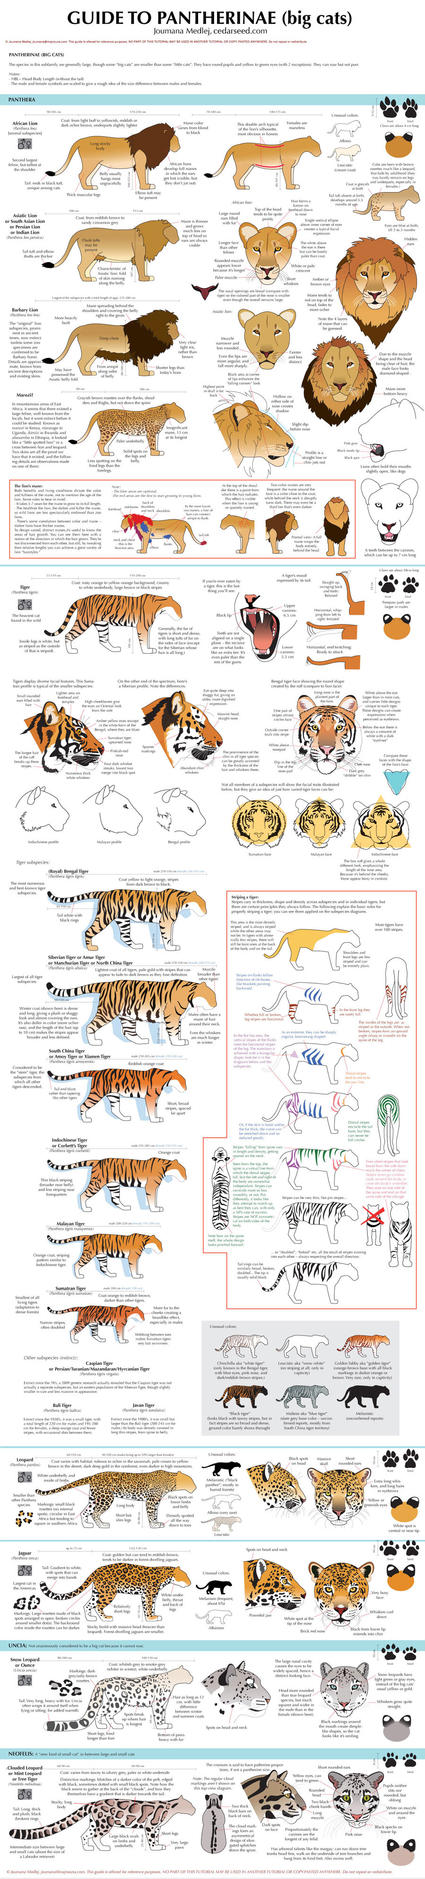 Guide to Big cats by Majnouna